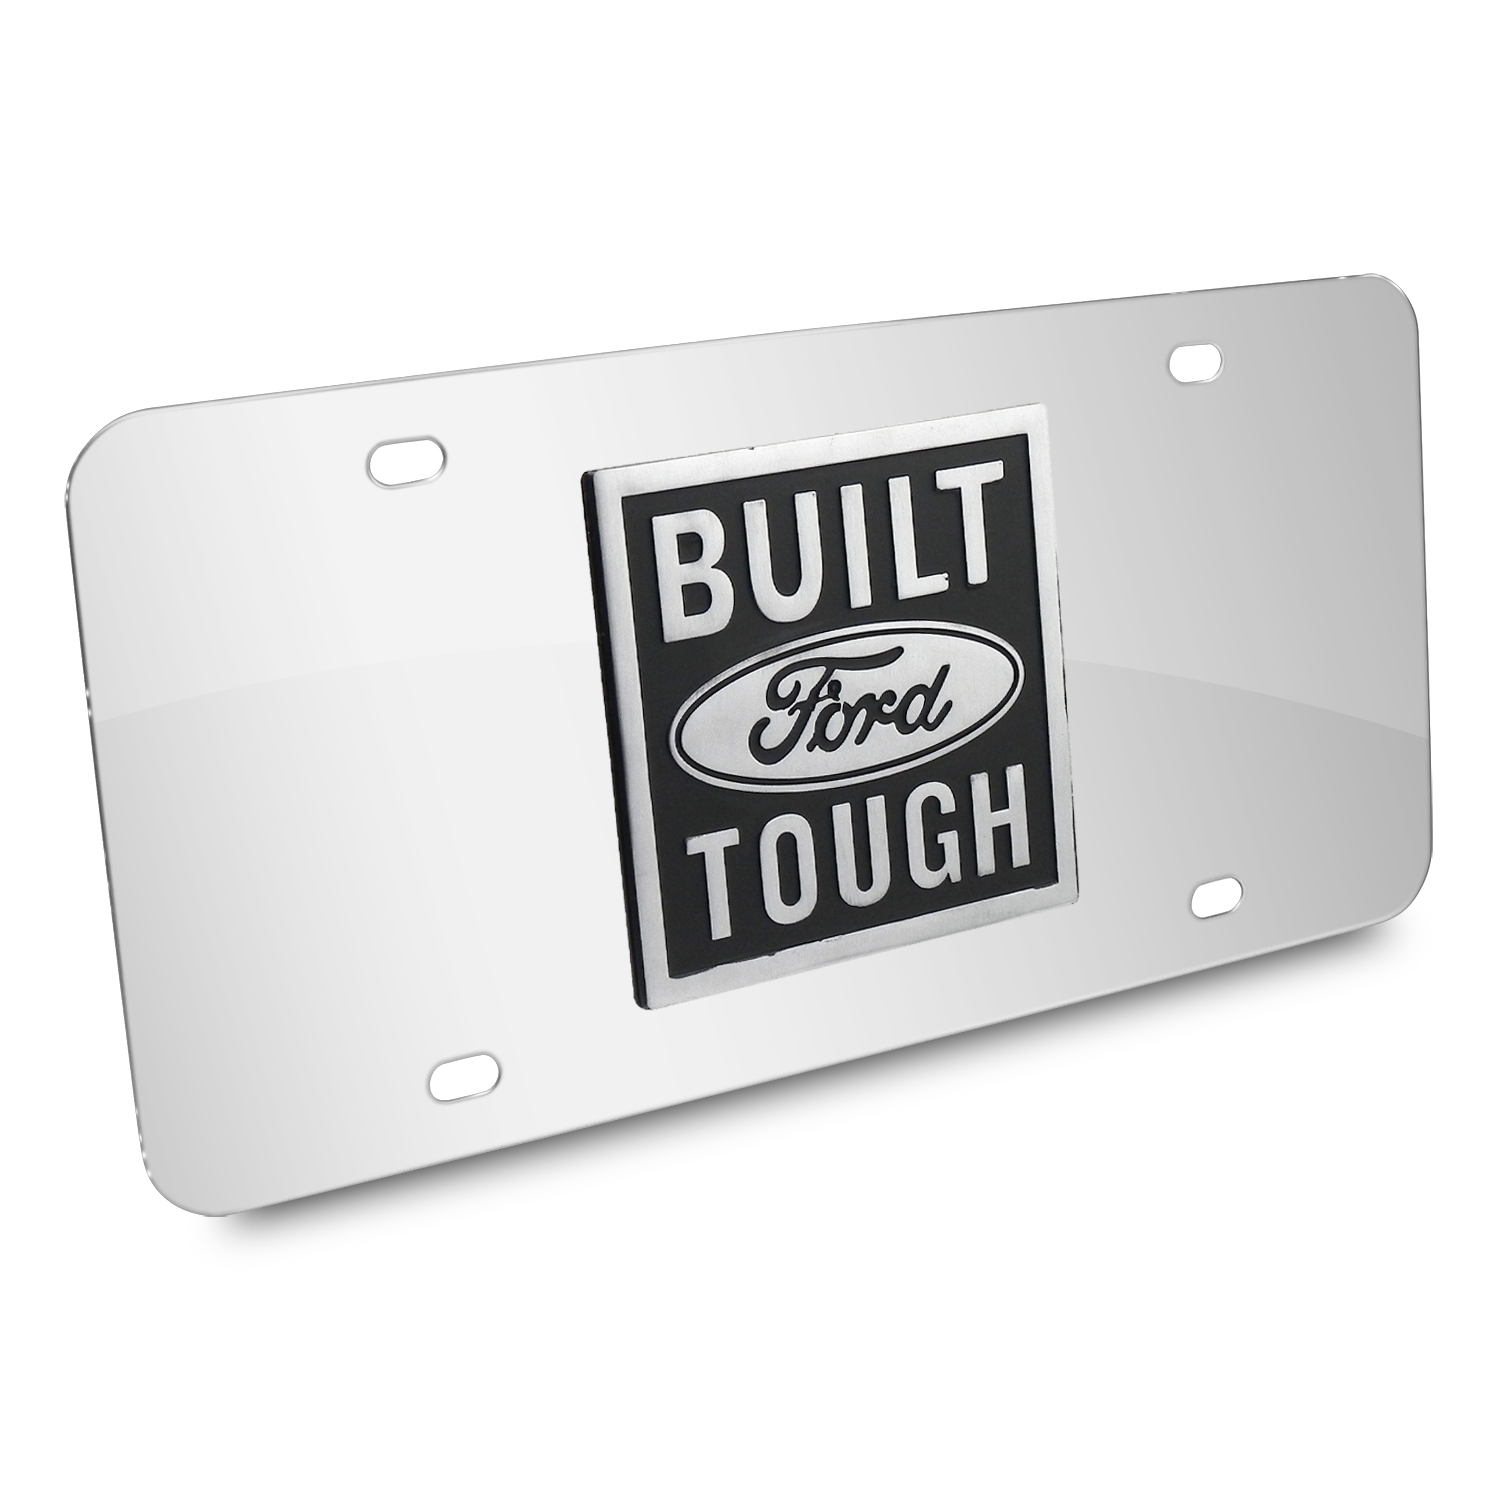 Ford Built Ford Tough 3D Logo Chrome Stainless Steel License Plate